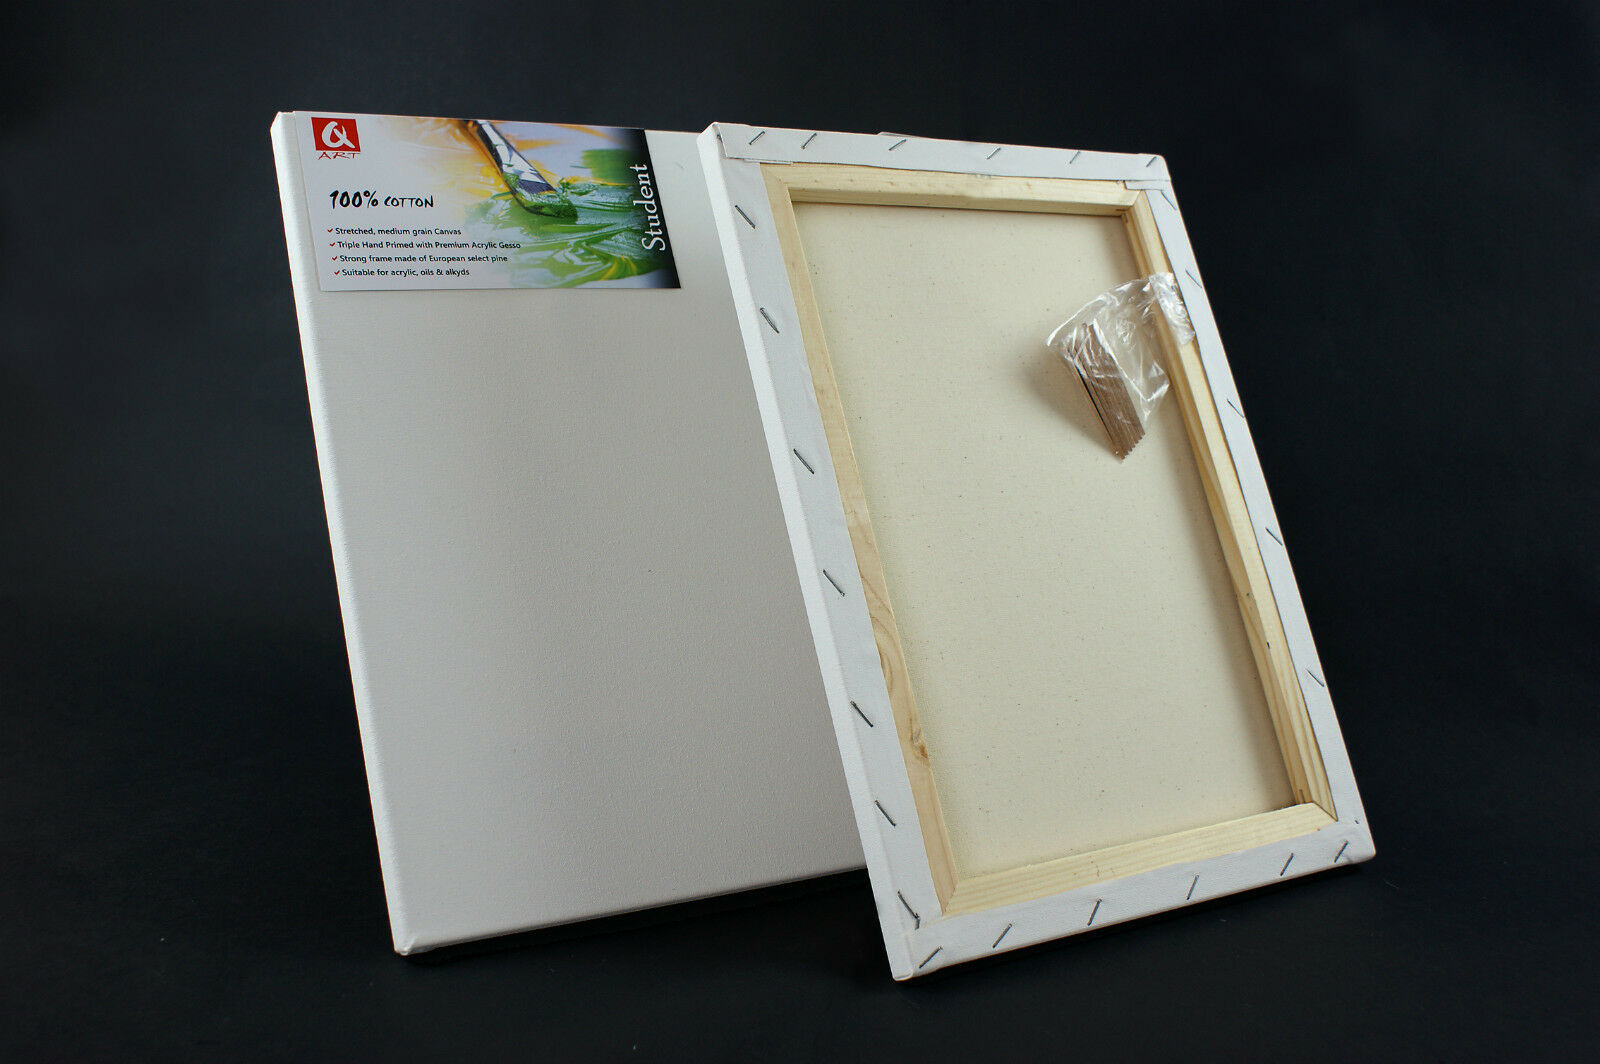 ARTIST BLANK STRETCHED & ACRYLIC PRIMED BOX FRAMED 100% COTTON ART CANVAS BEST Q - 2